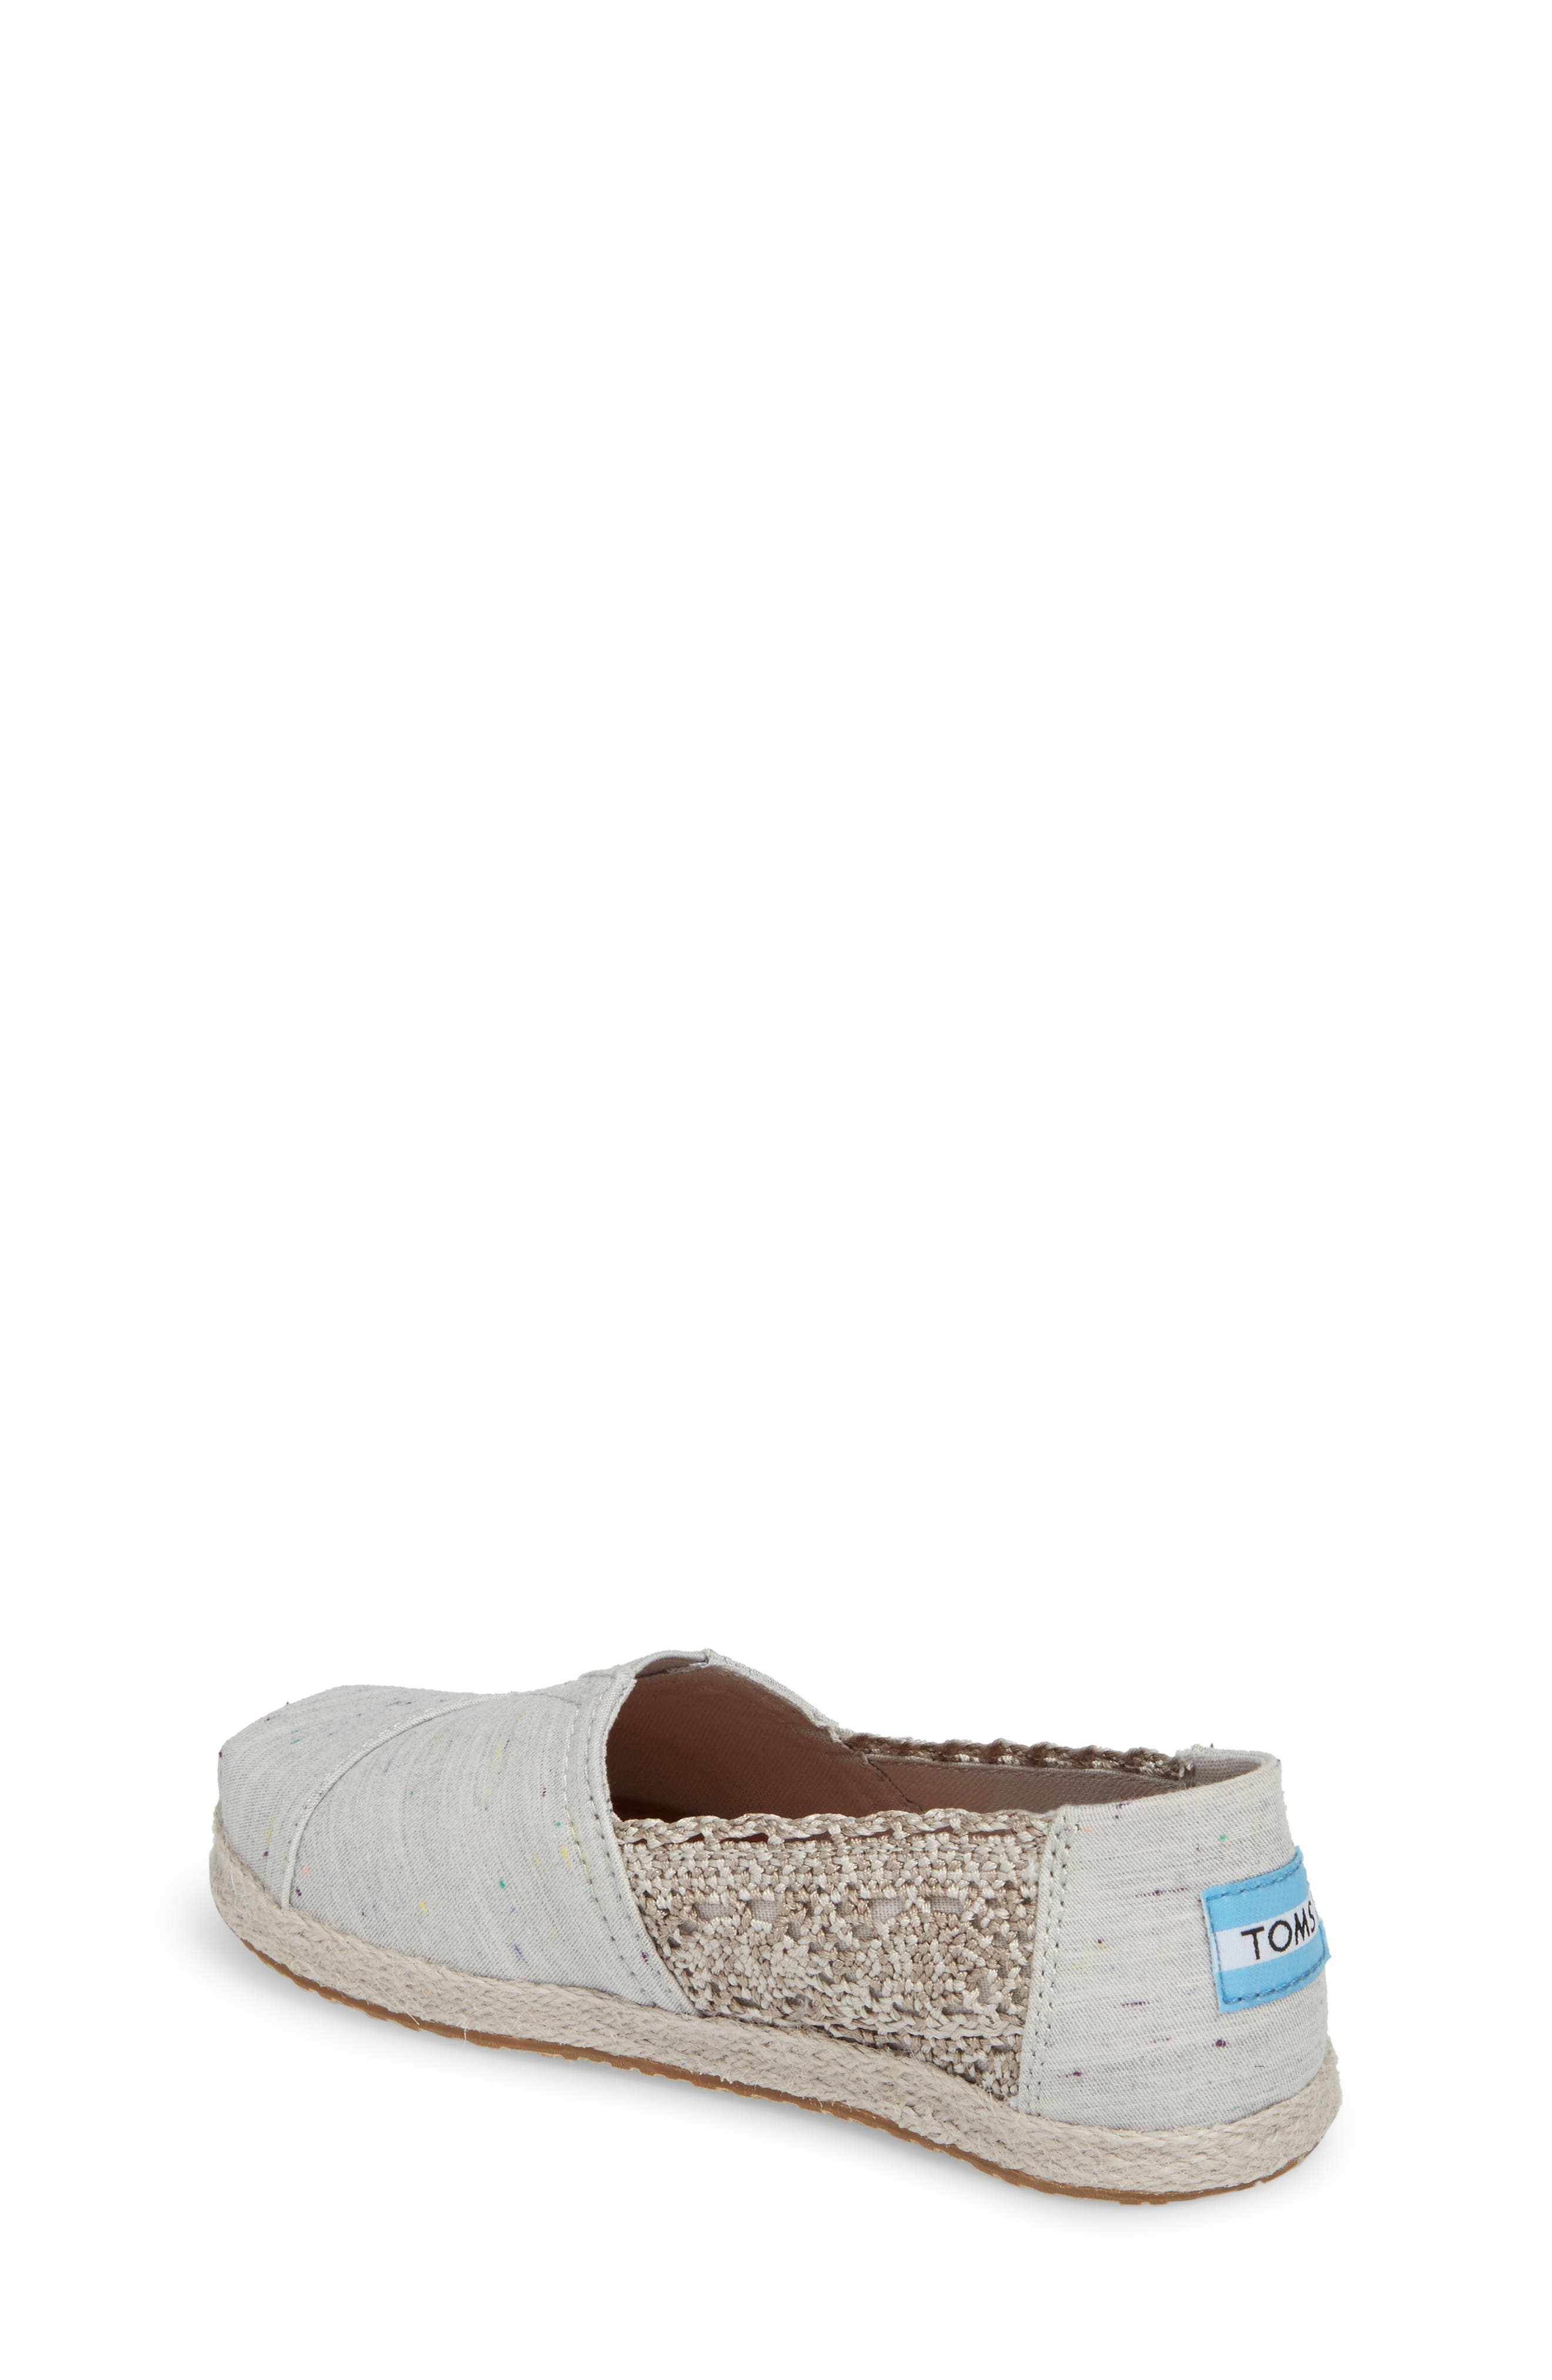 babies toms pinterest soles baby crib impact big give and tiny toes boys a shoes cribs pin clothes